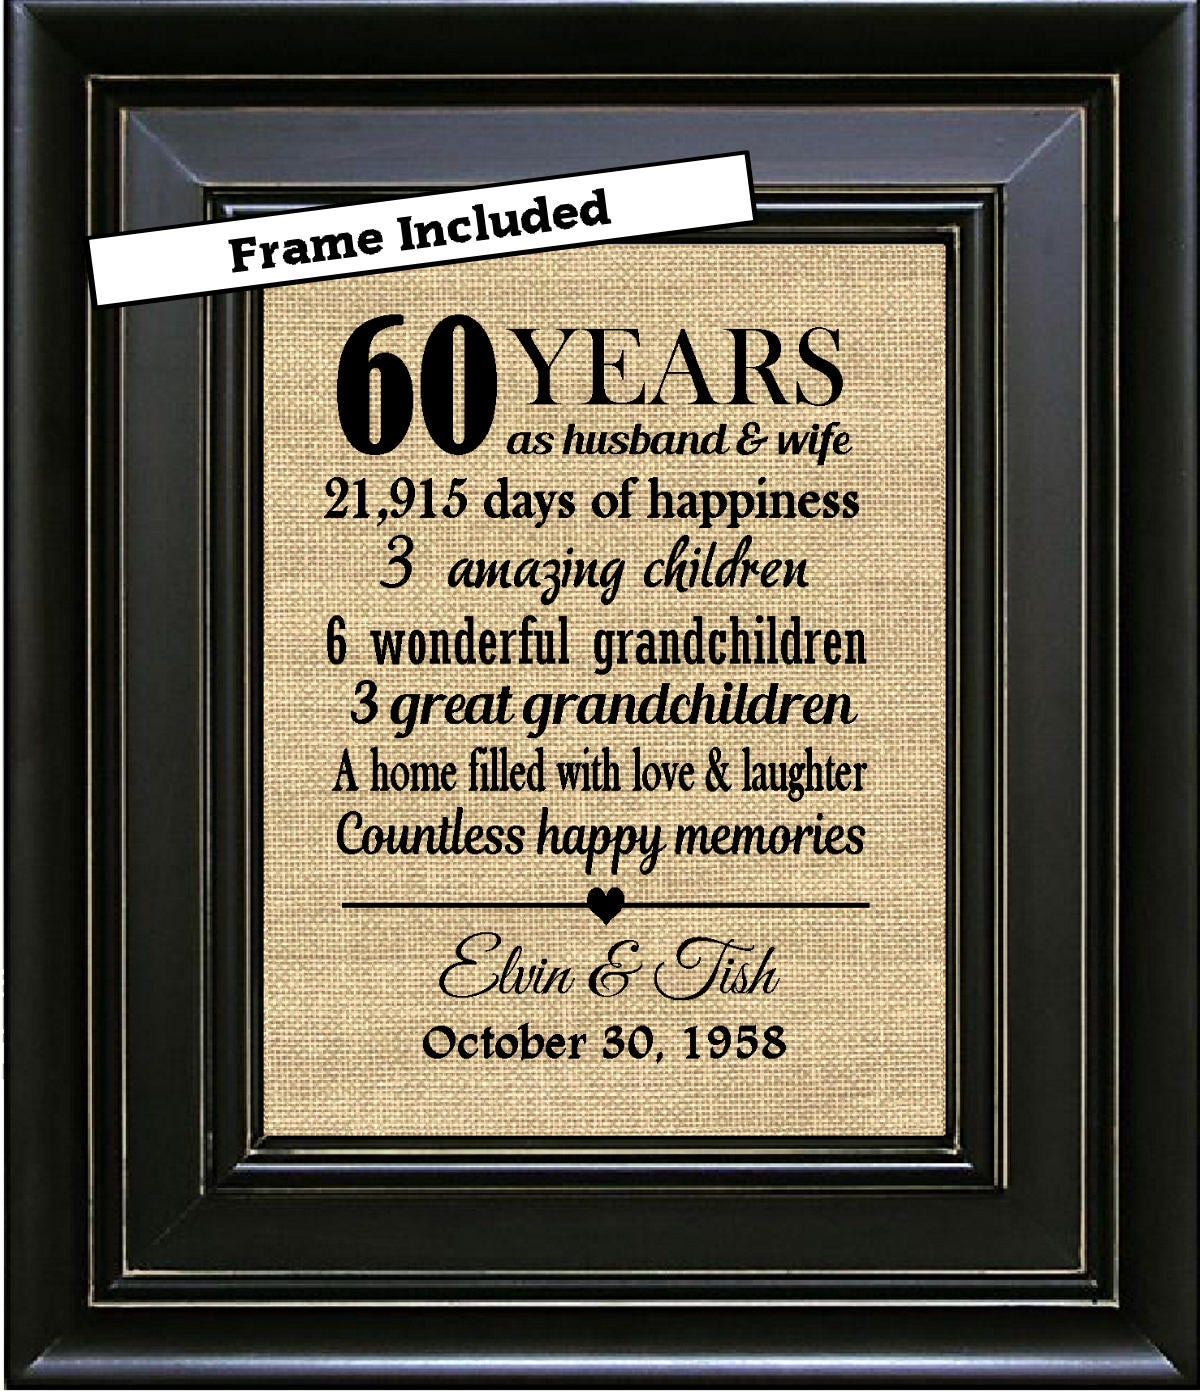 Wedding Anniversary List Of Gifts: FRAMED 60th Wedding Anniversary/60th Anniversary Gifts/60th